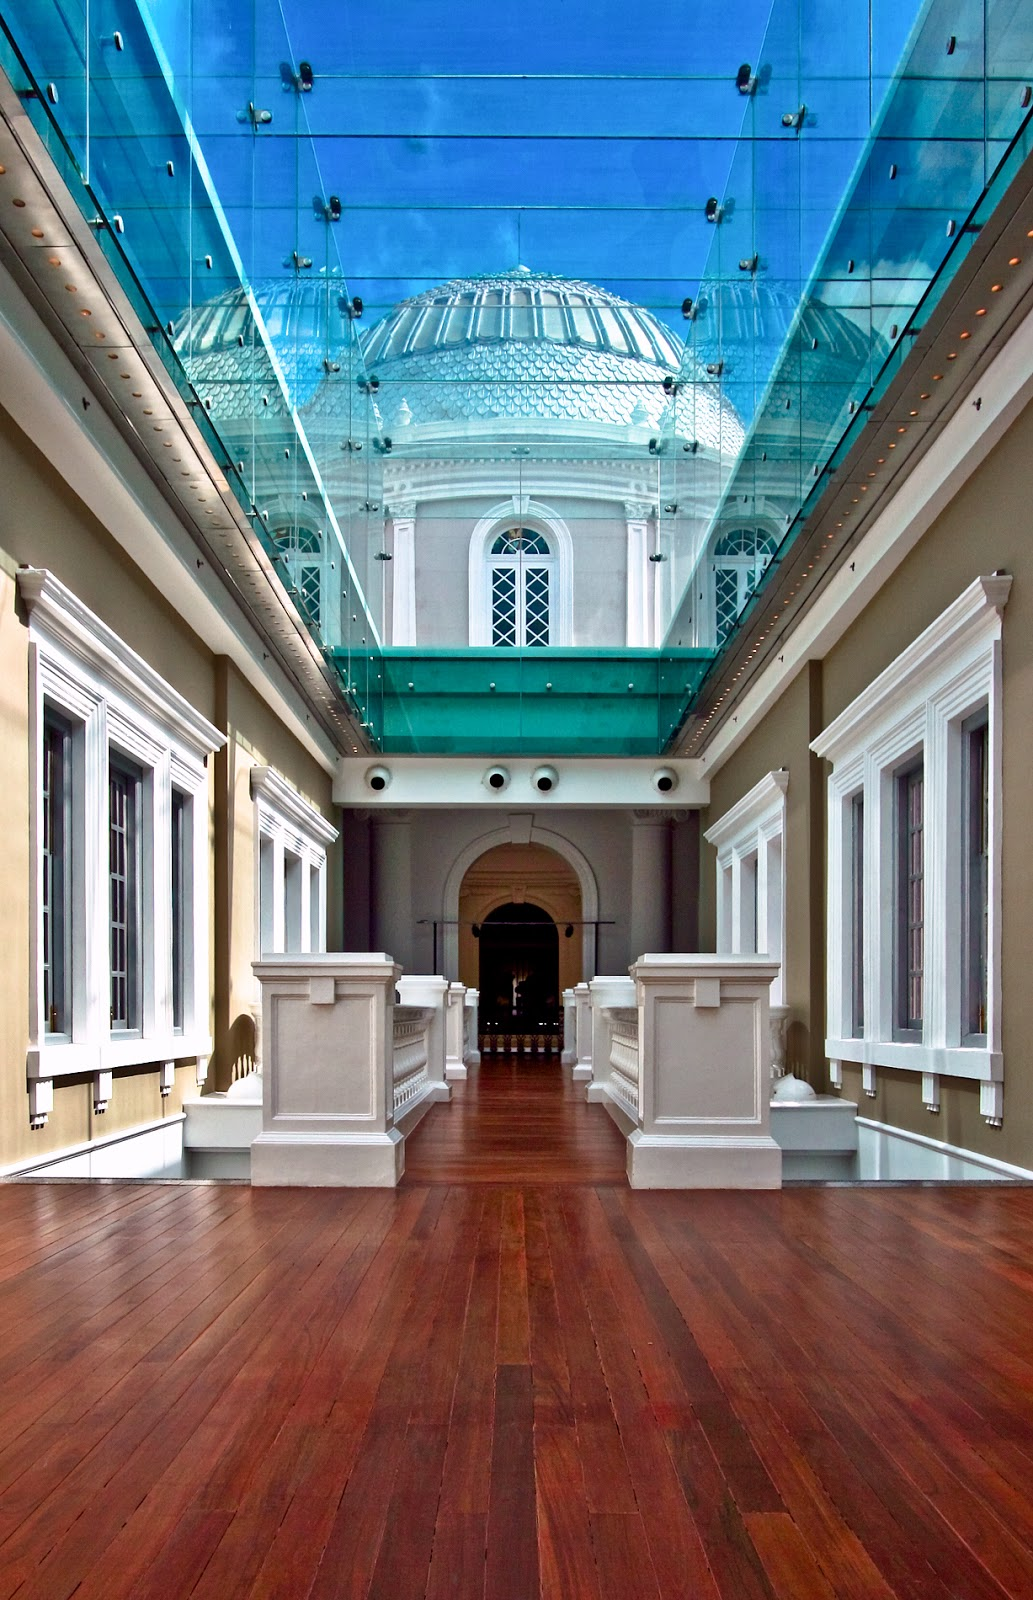 Top Rated Places to Visit in Singapore | National Museum Singapore